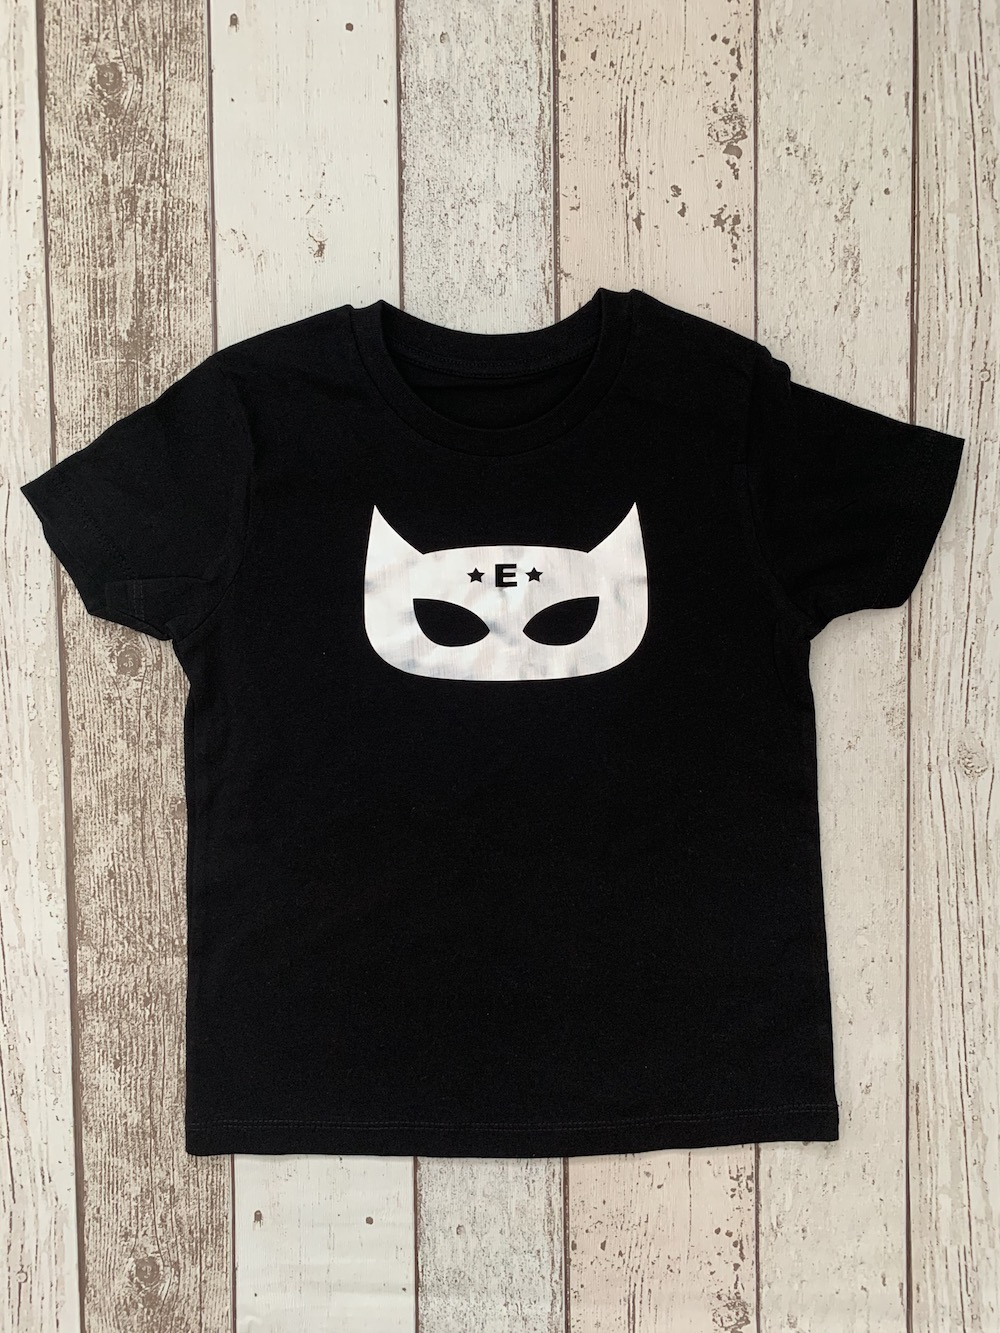 Superhero Personalised Tshirt – Black